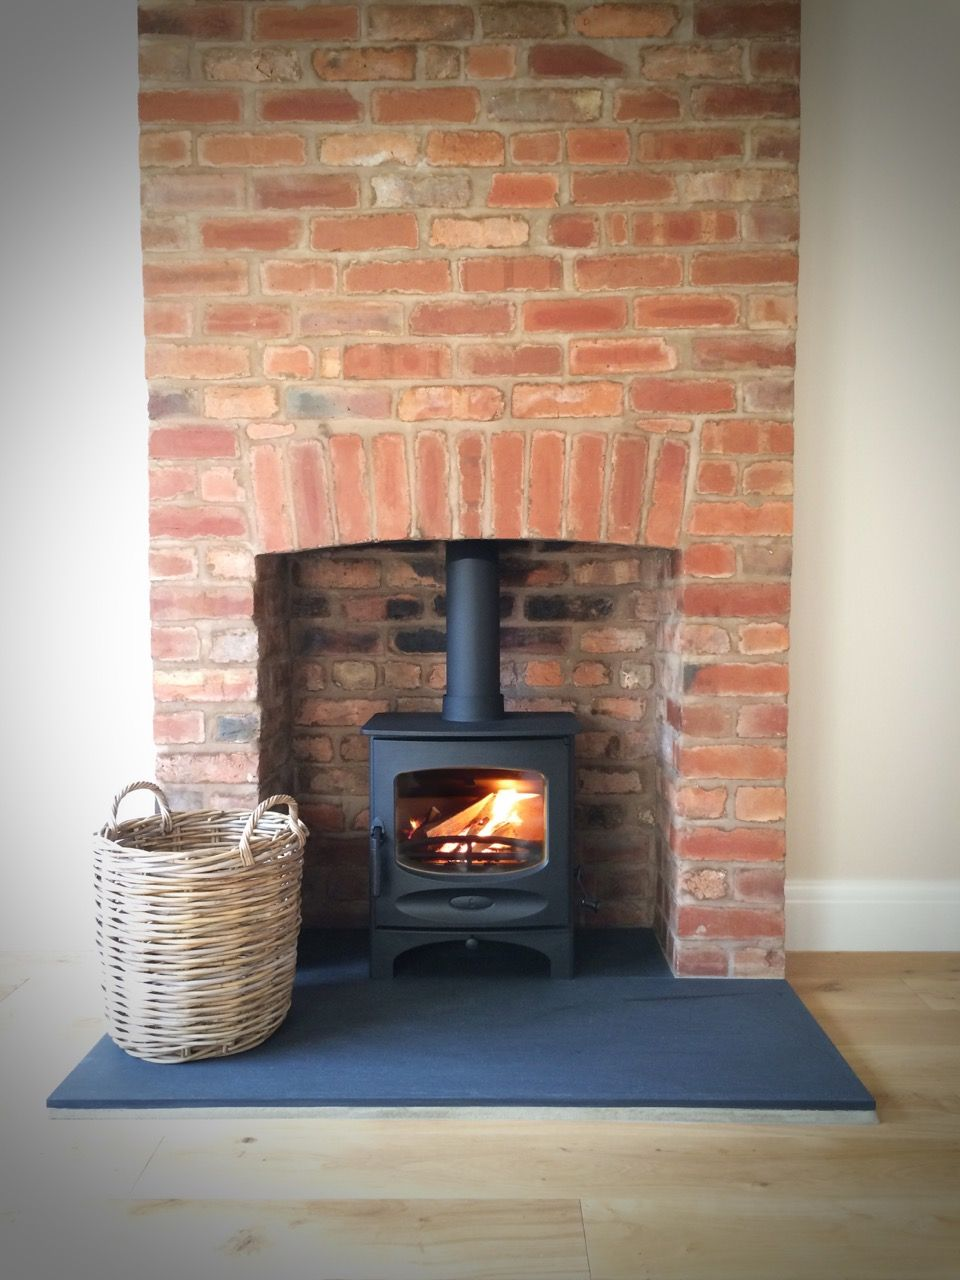 charnwoodc fiverivenslatehearthbrickfireplace 960a—1280 pixels